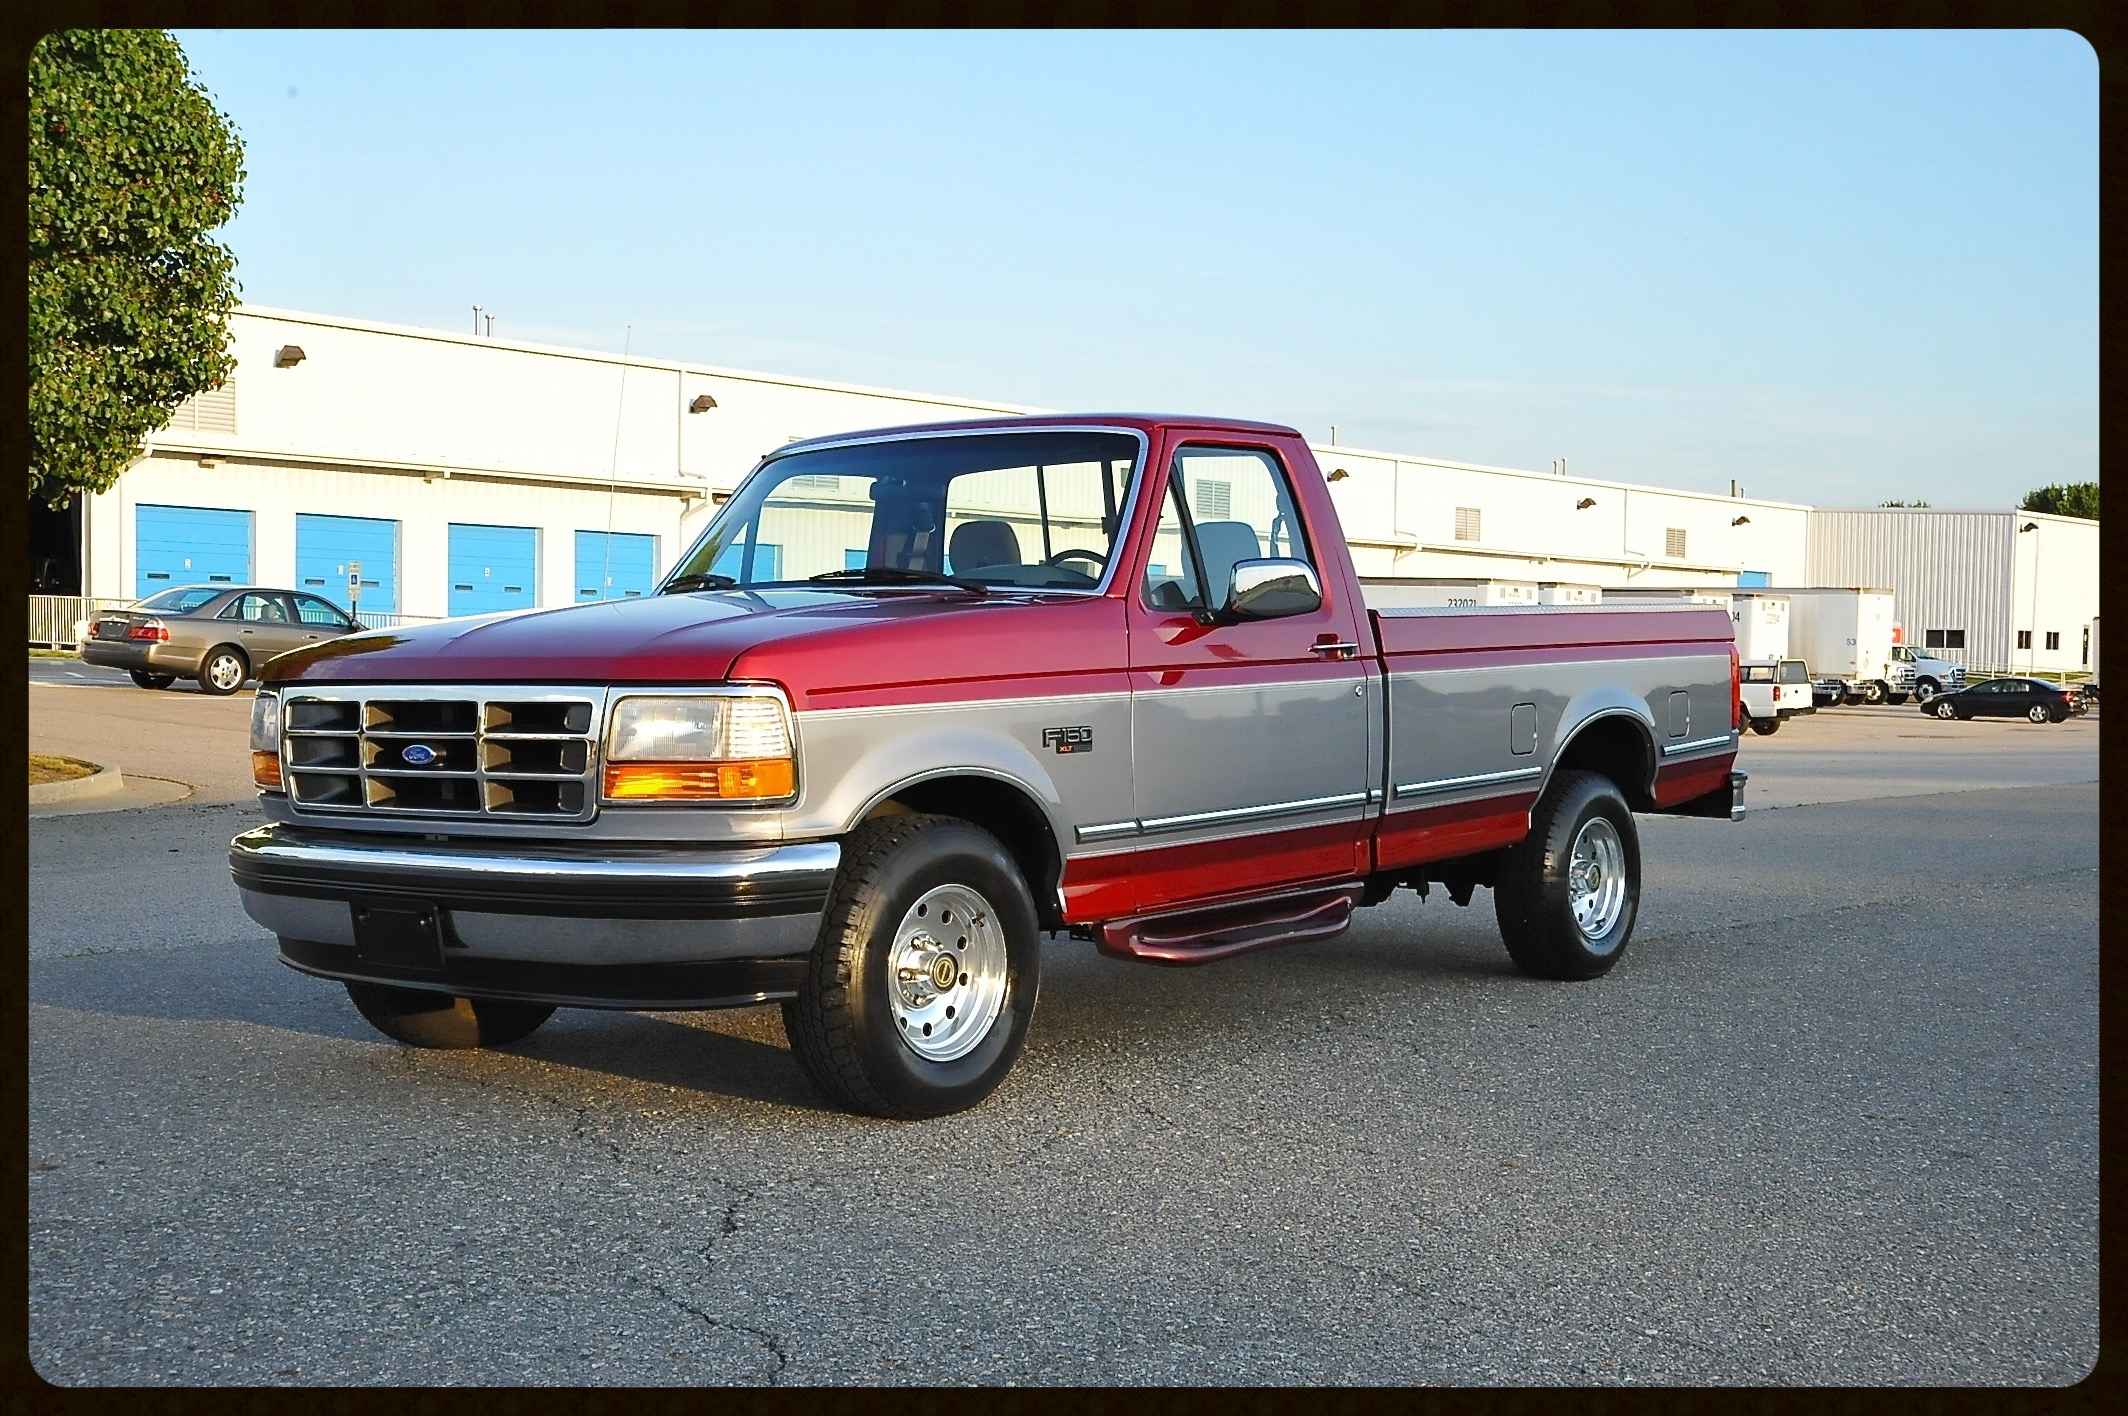 1995 F150 with ONLY 117K ORIGINAL MILES...This was truly Your Old Mans Truck...Owned By the Same Family Since New...Looks Like a 20K Truck